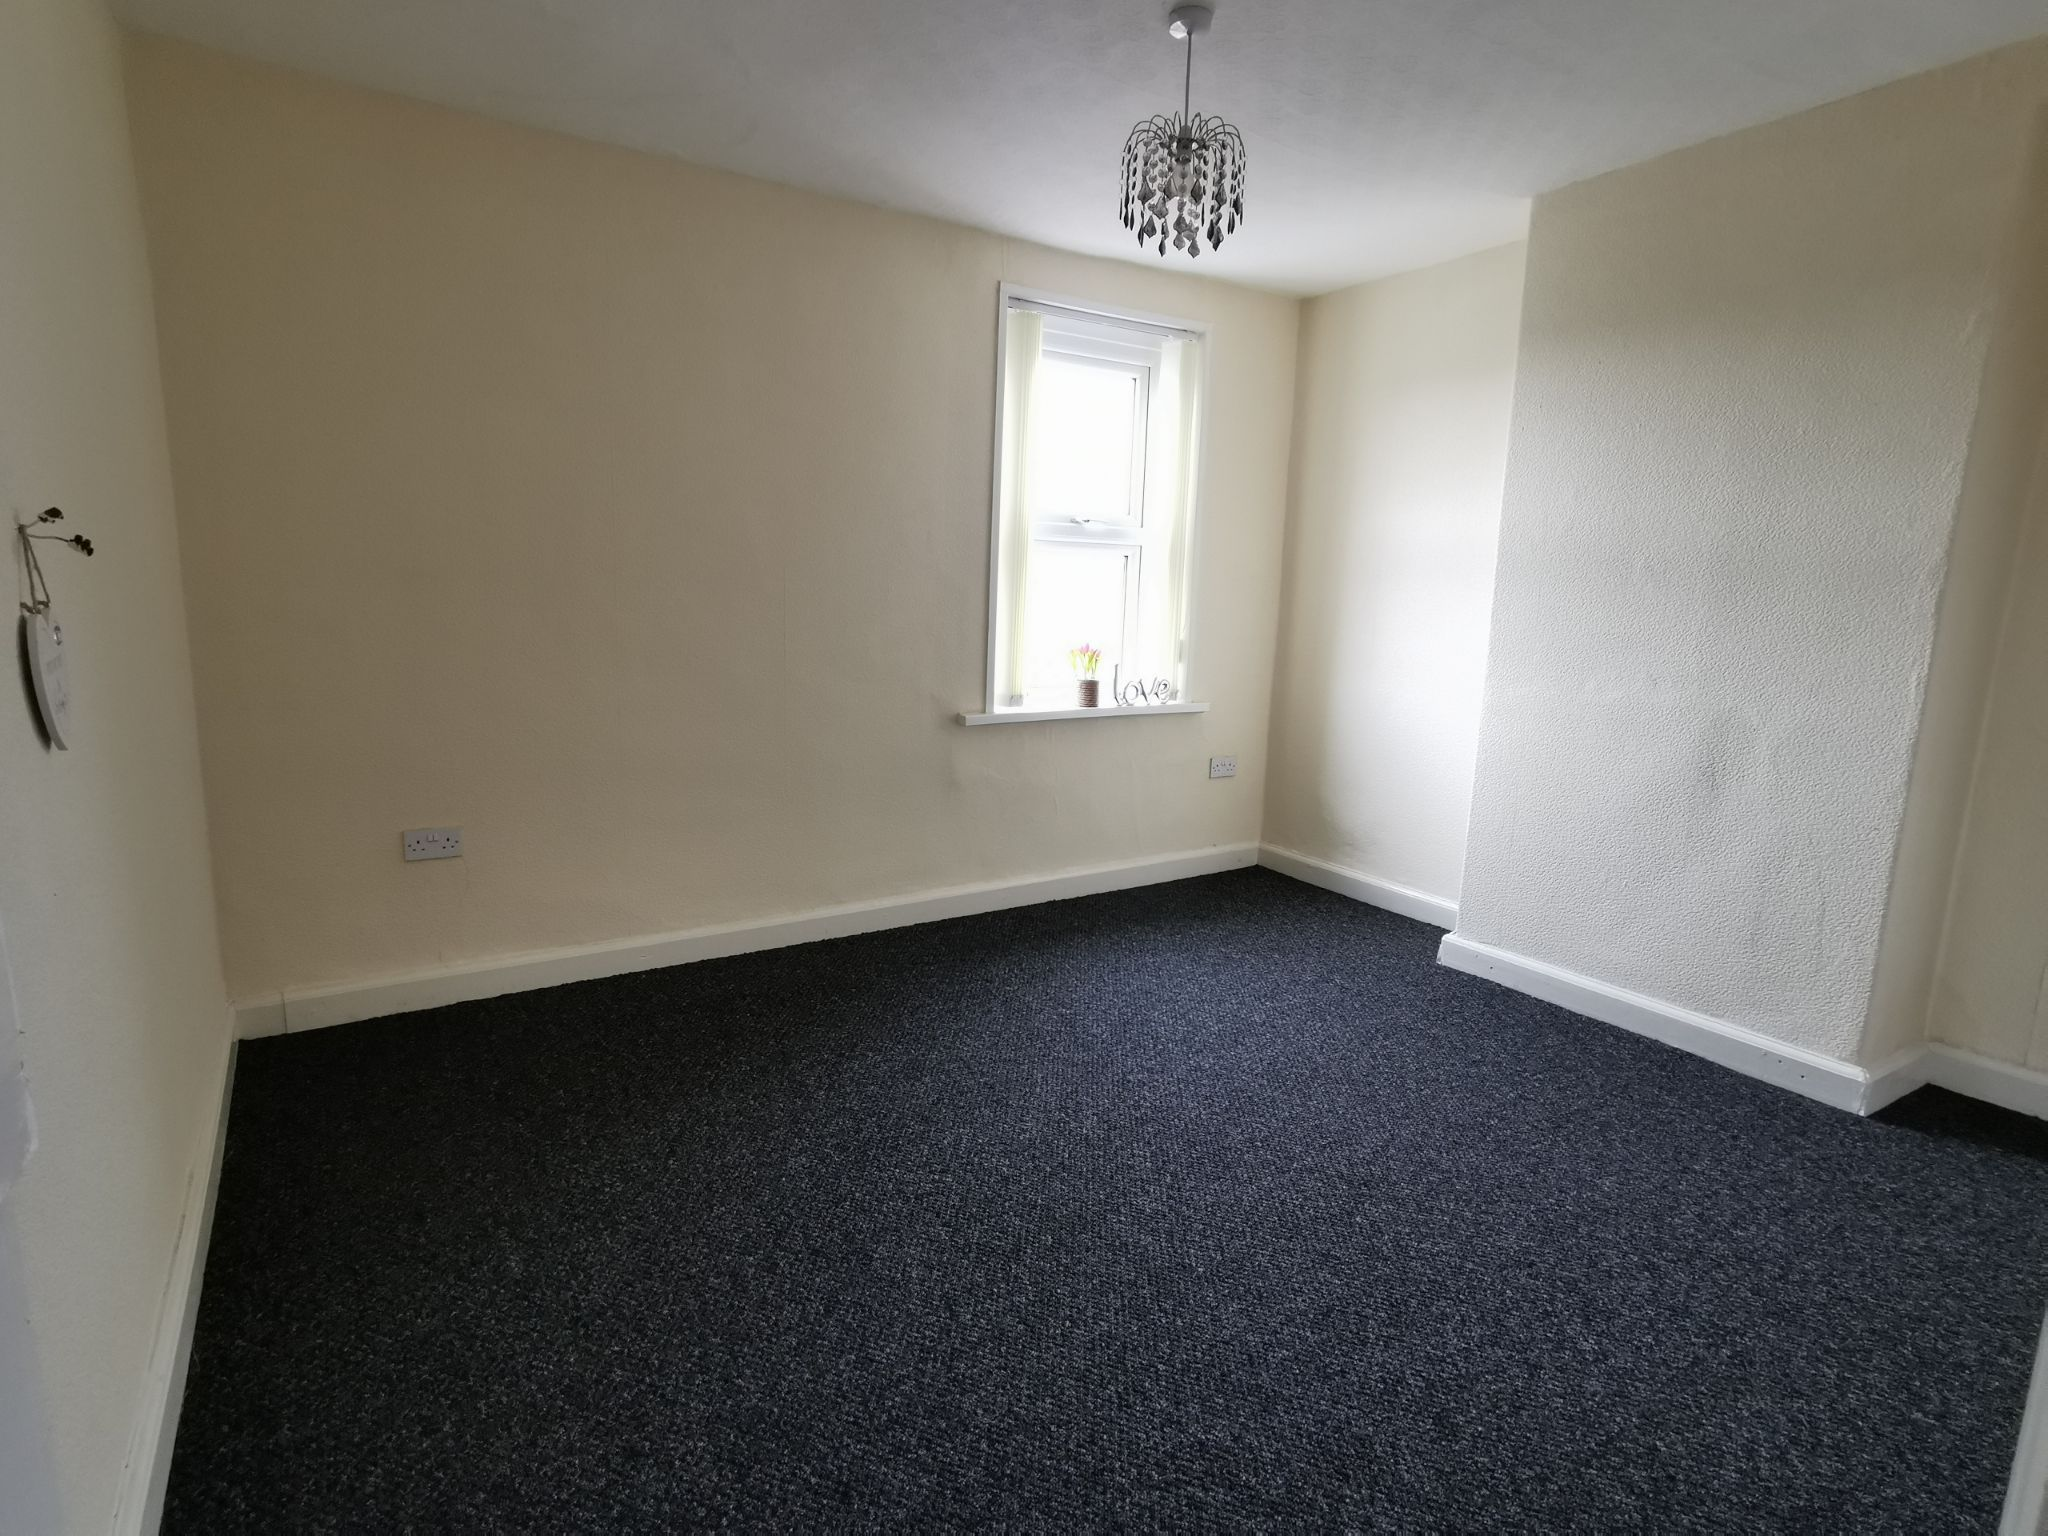 2 bedroom mid terraced house For Sale in Allerdale - Photograph 7.